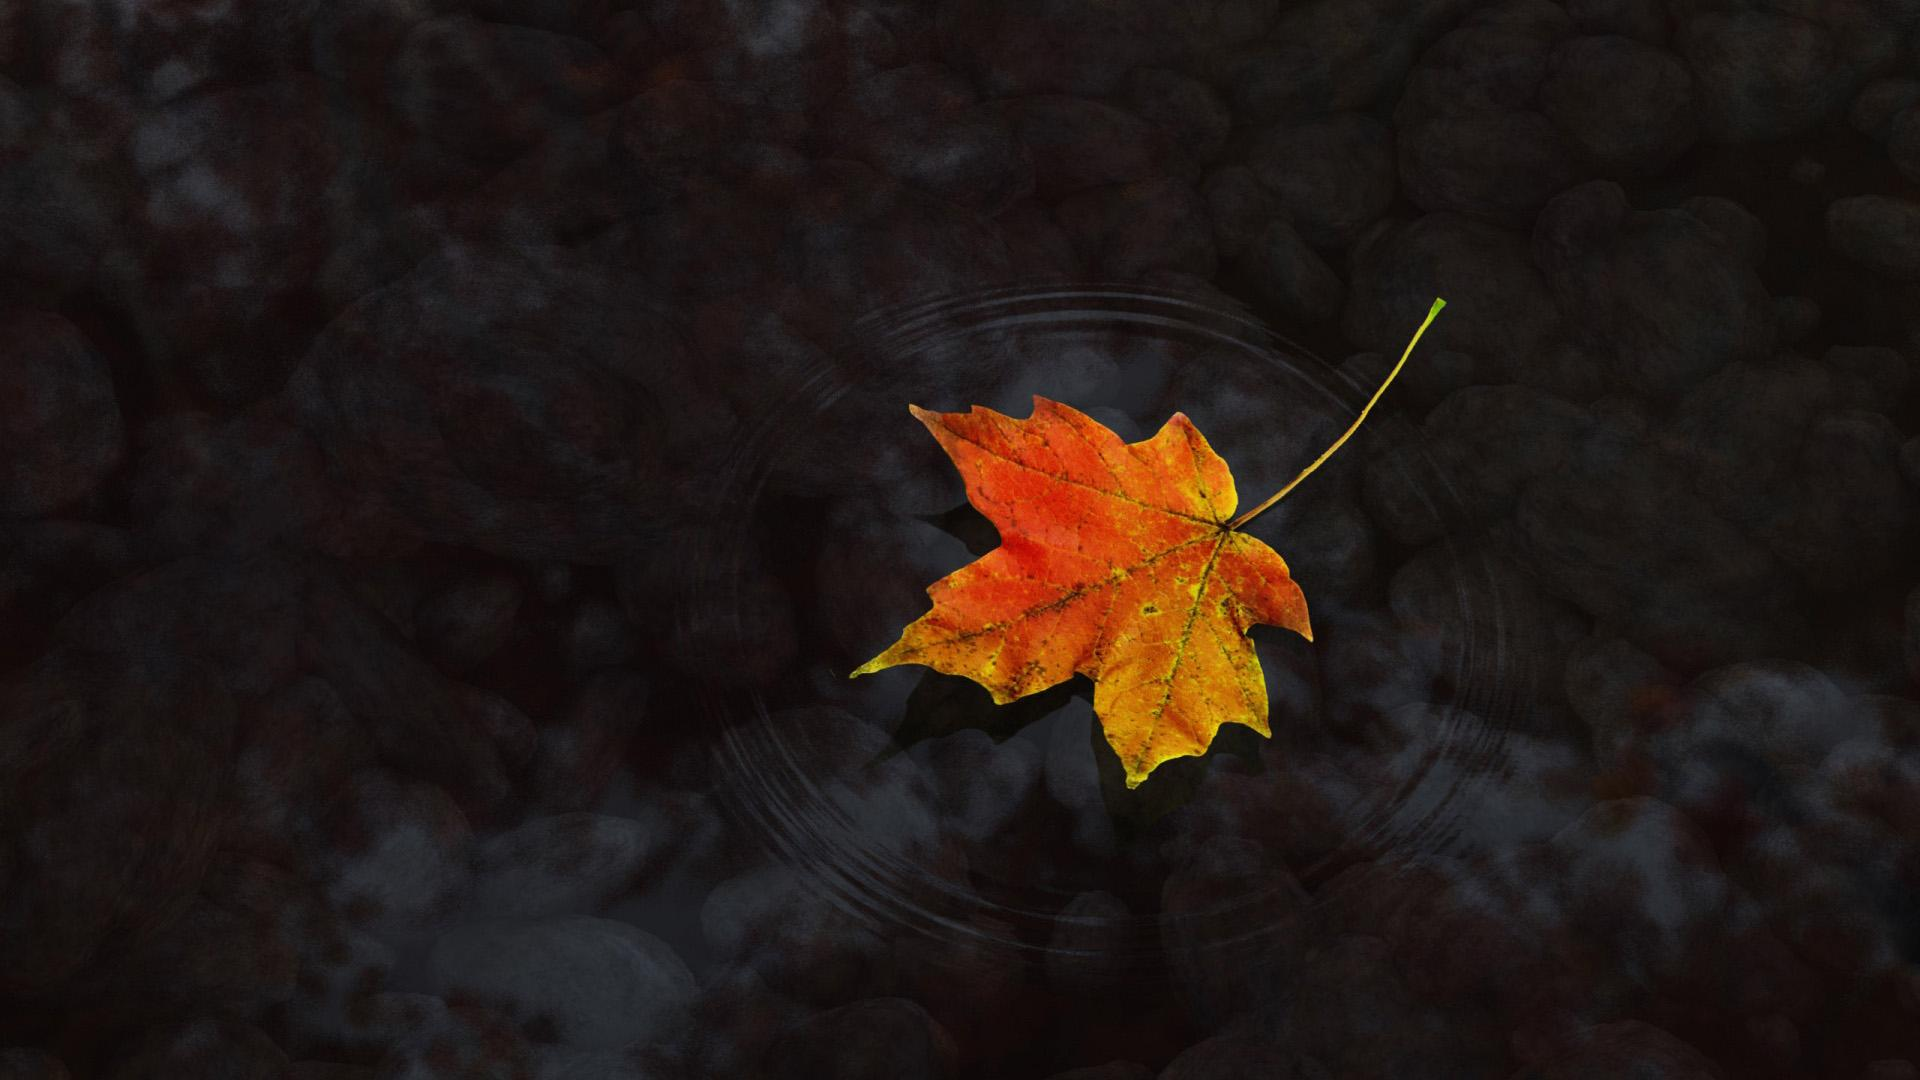 Dual Monitor Fall Wallpaper Maple Leaf Wallpapers Wallpaper High Definition High